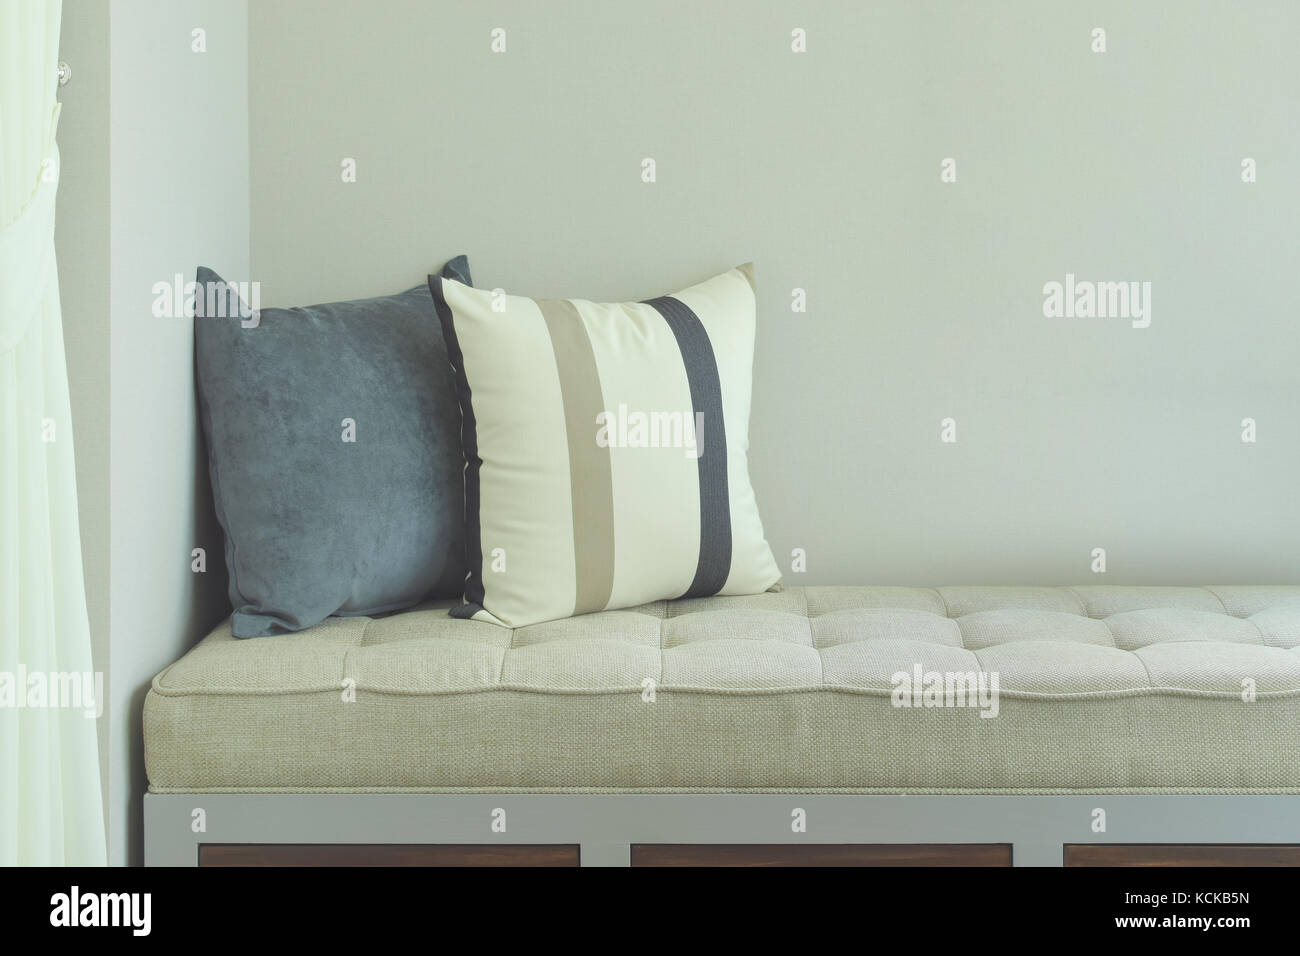 Pillows on comfy seat in living room - Stock Image